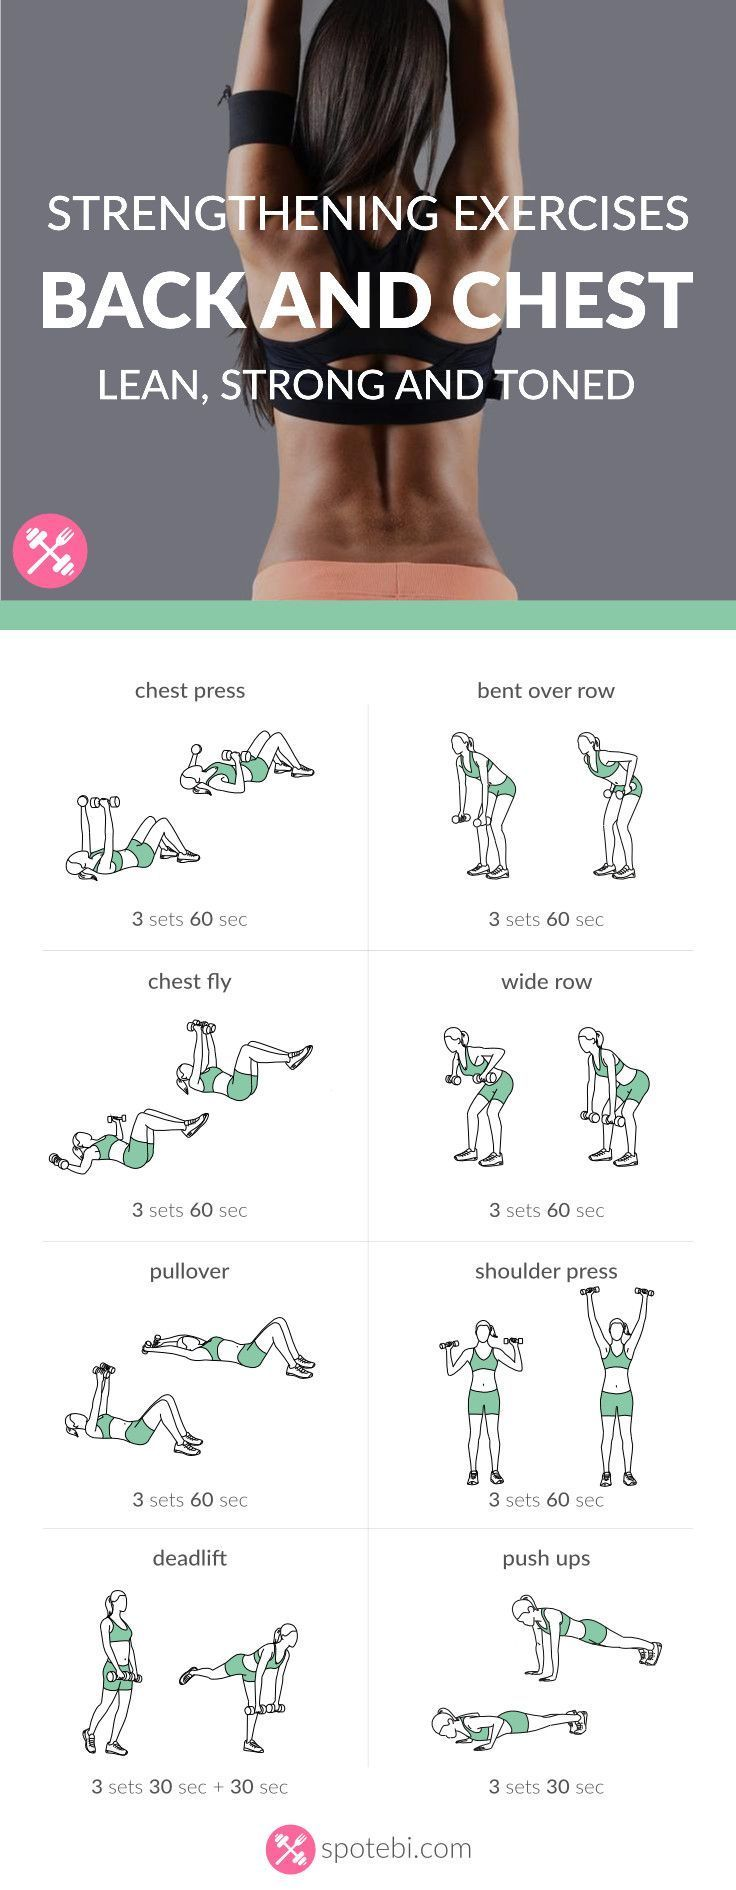 Lift your breasts naturally! Try these chest and back strengthening exercises for women to help you tone, firm and lift your chest and improve your posture.